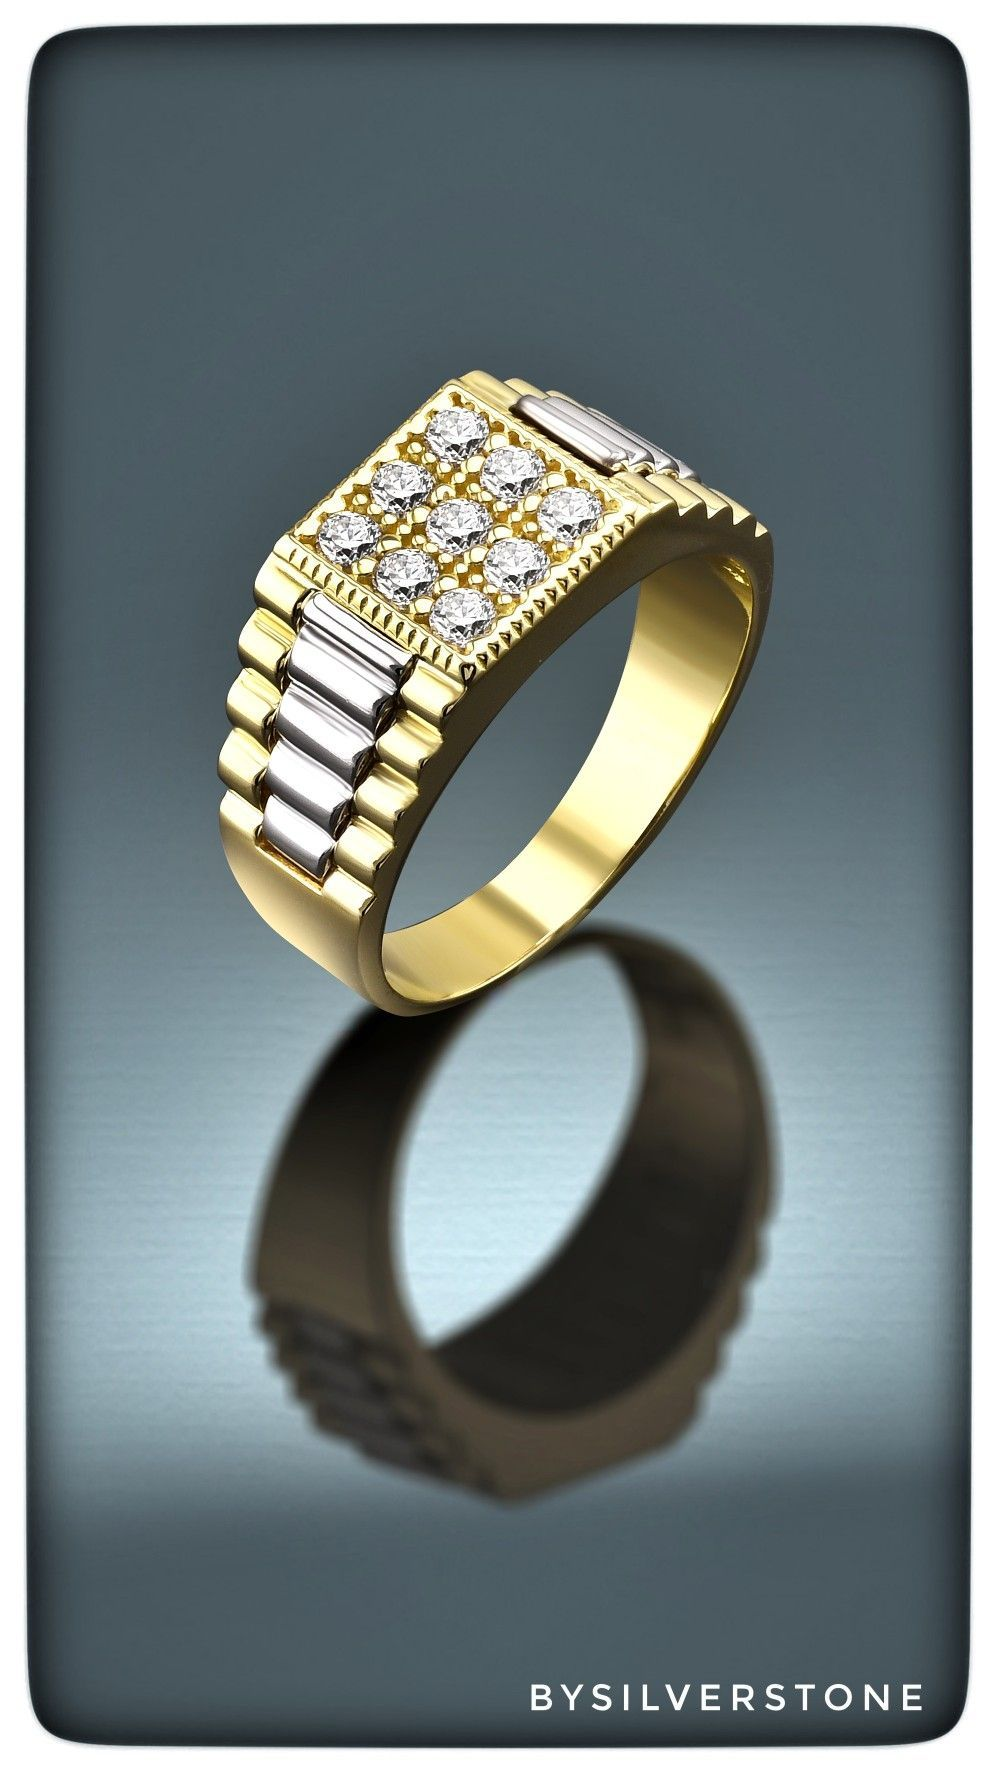 American Set Co 14K Two Tone Gold Round Stone CZ Mens Wedding Band